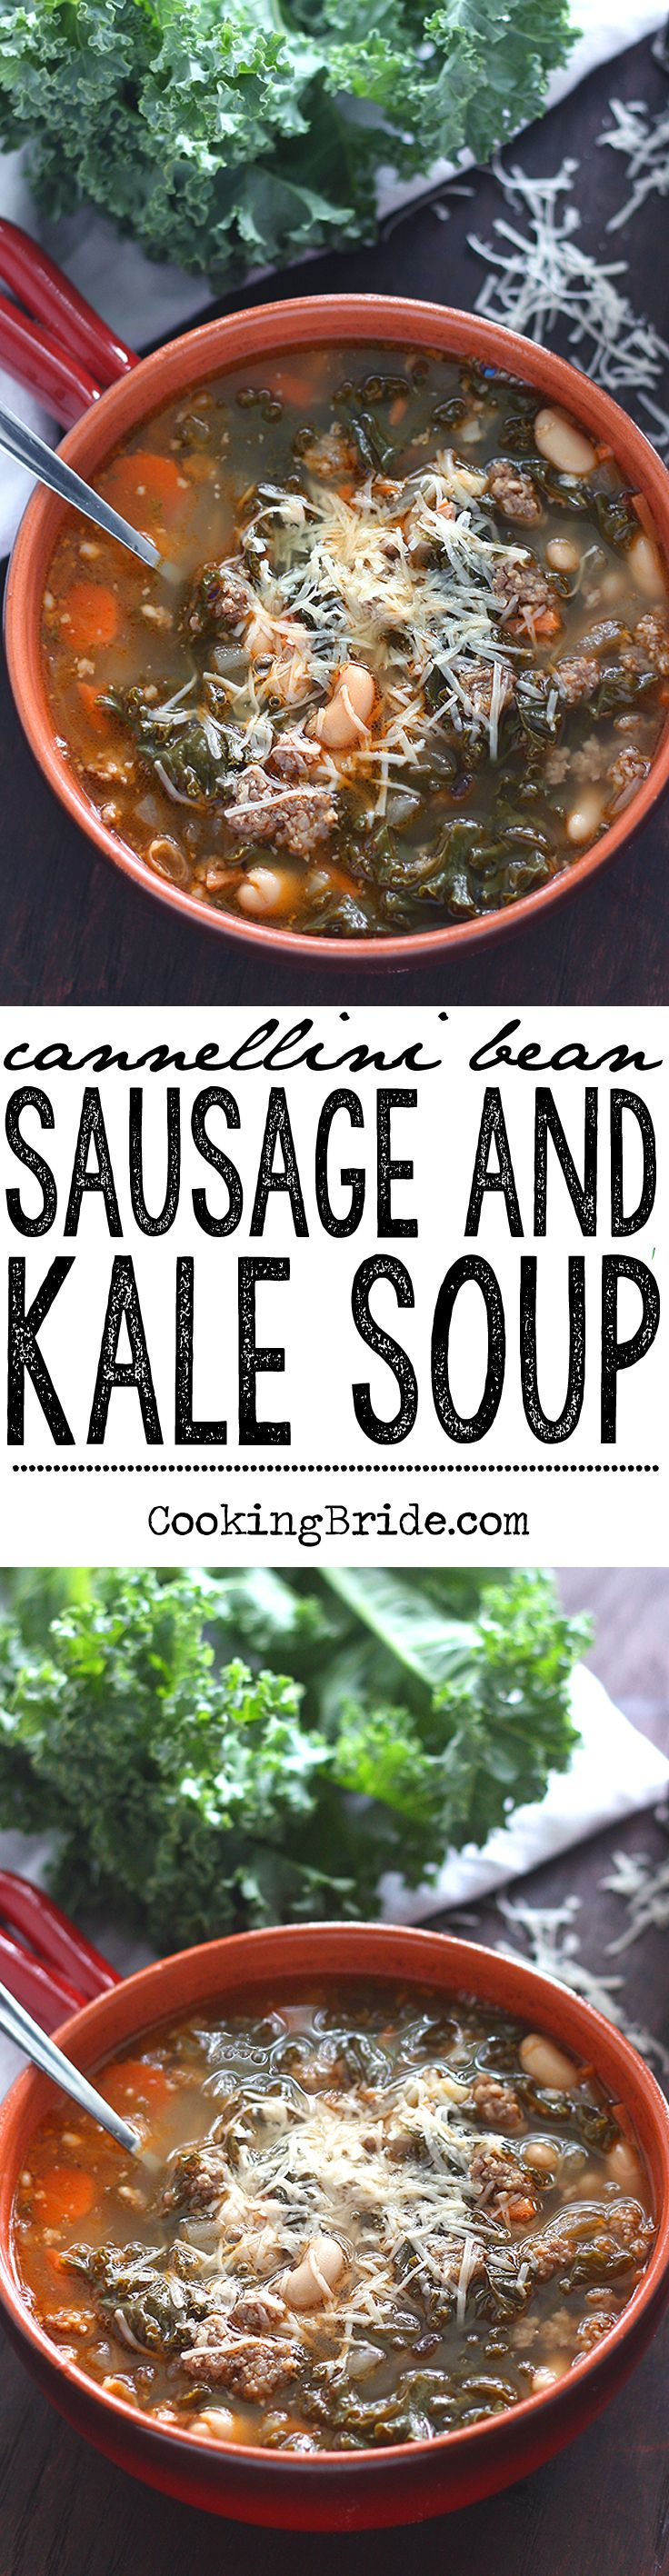 Italian sausage is simmered in a tomato broth with tender cannellini beans, vegetalbes, and fresh kale for Cannellini Bean, Sausage and Kale Soup.